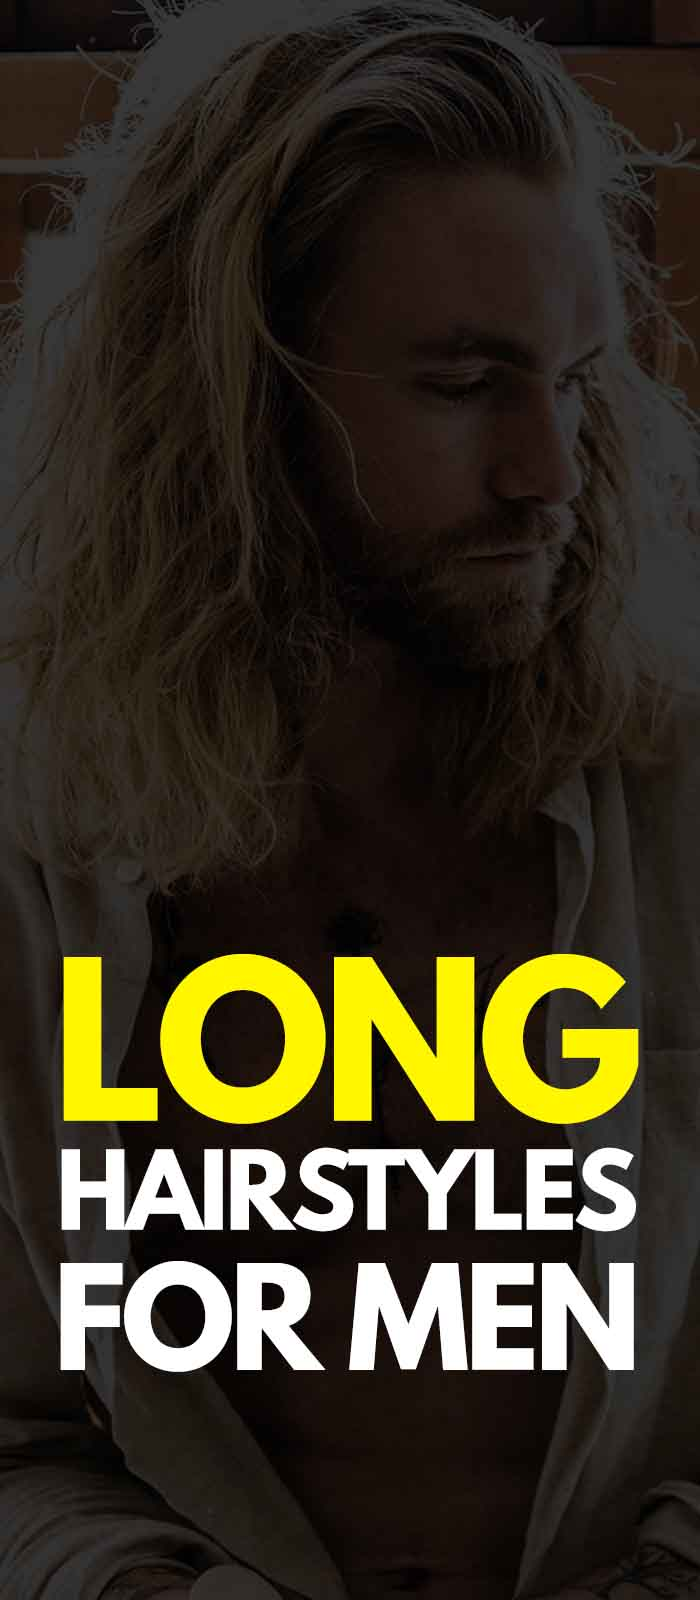 Long Hairstyle For Men!